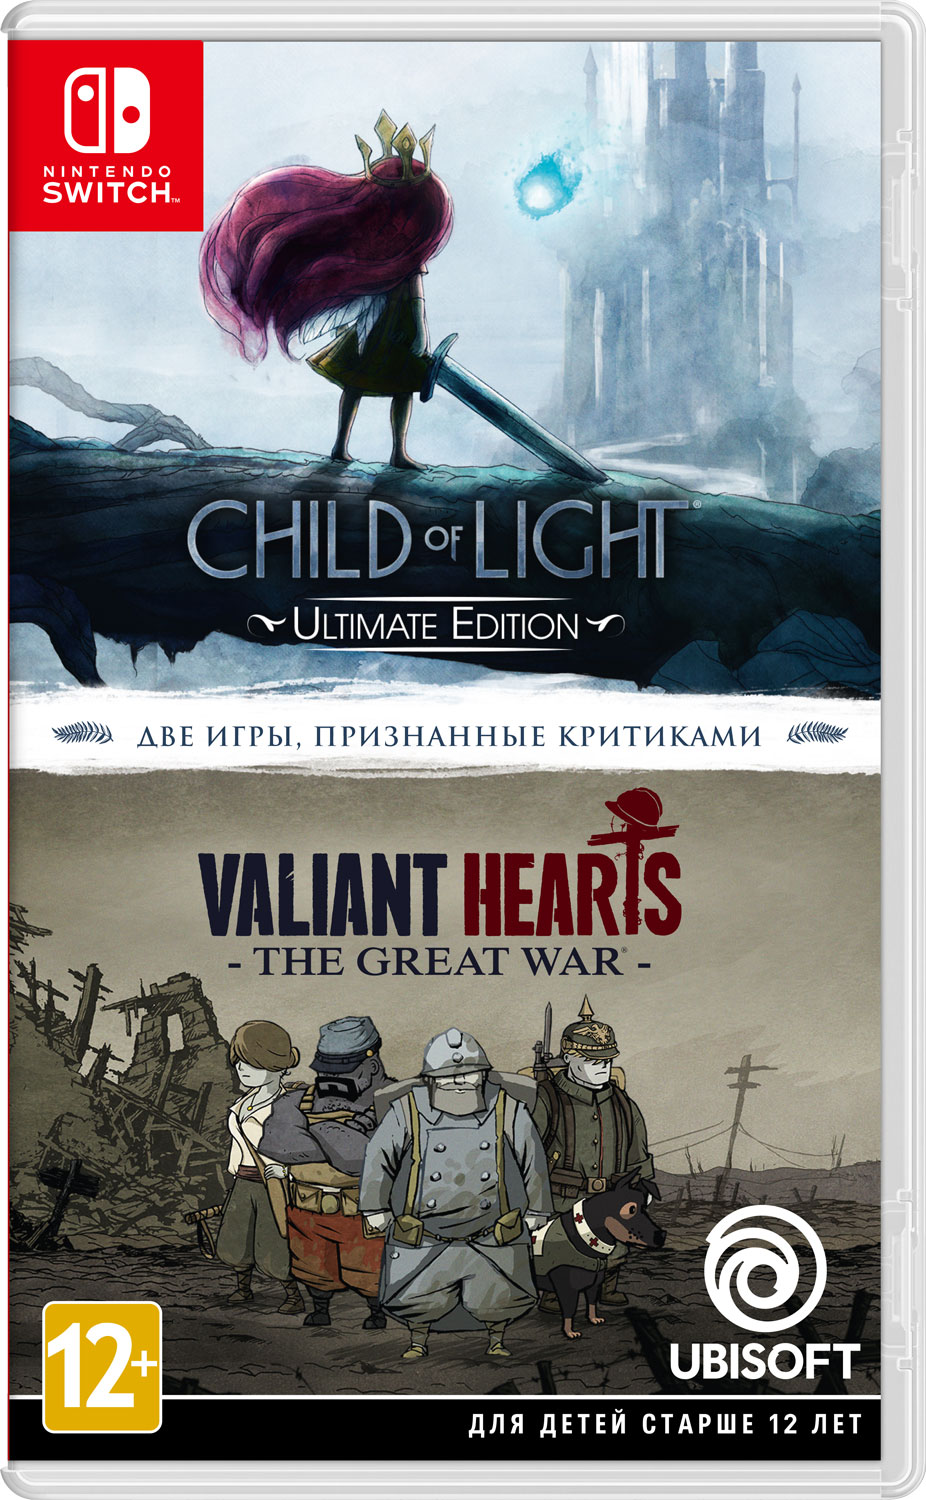 Child of Light / Valiant Hearts: The Great War (Nintendo Switch) геймпад nintendo switch pro controller